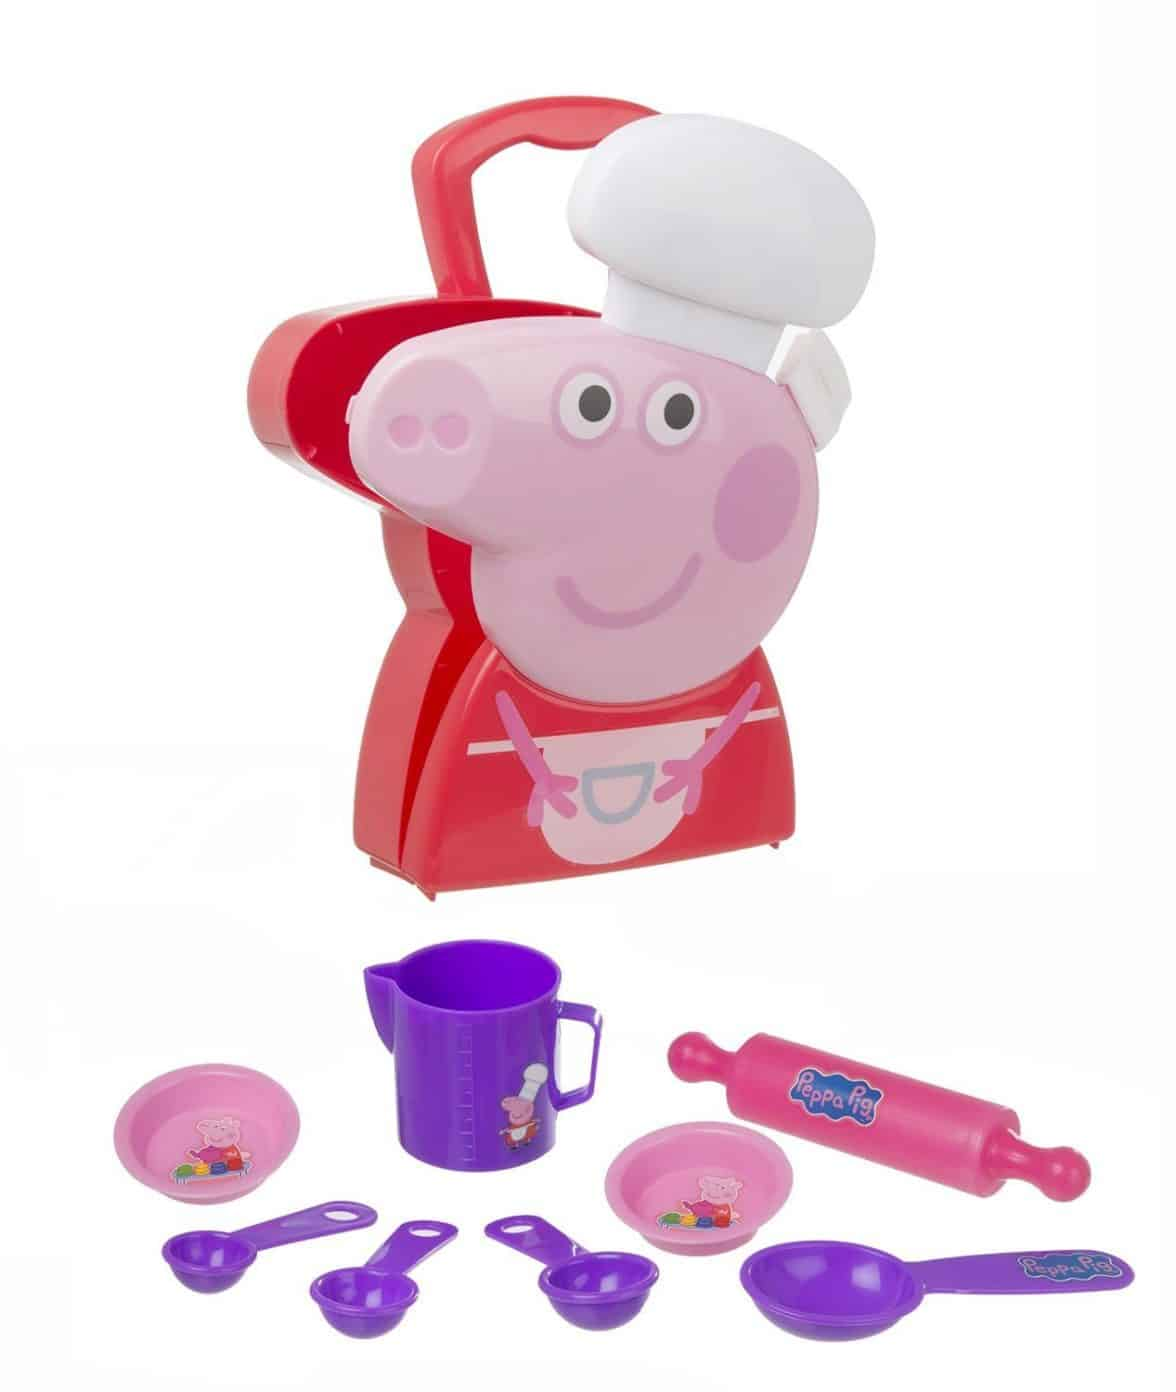 Cuisine Peppa Pig Buy Peppa Pig Child 39s Chef Cooking Case For Kids The